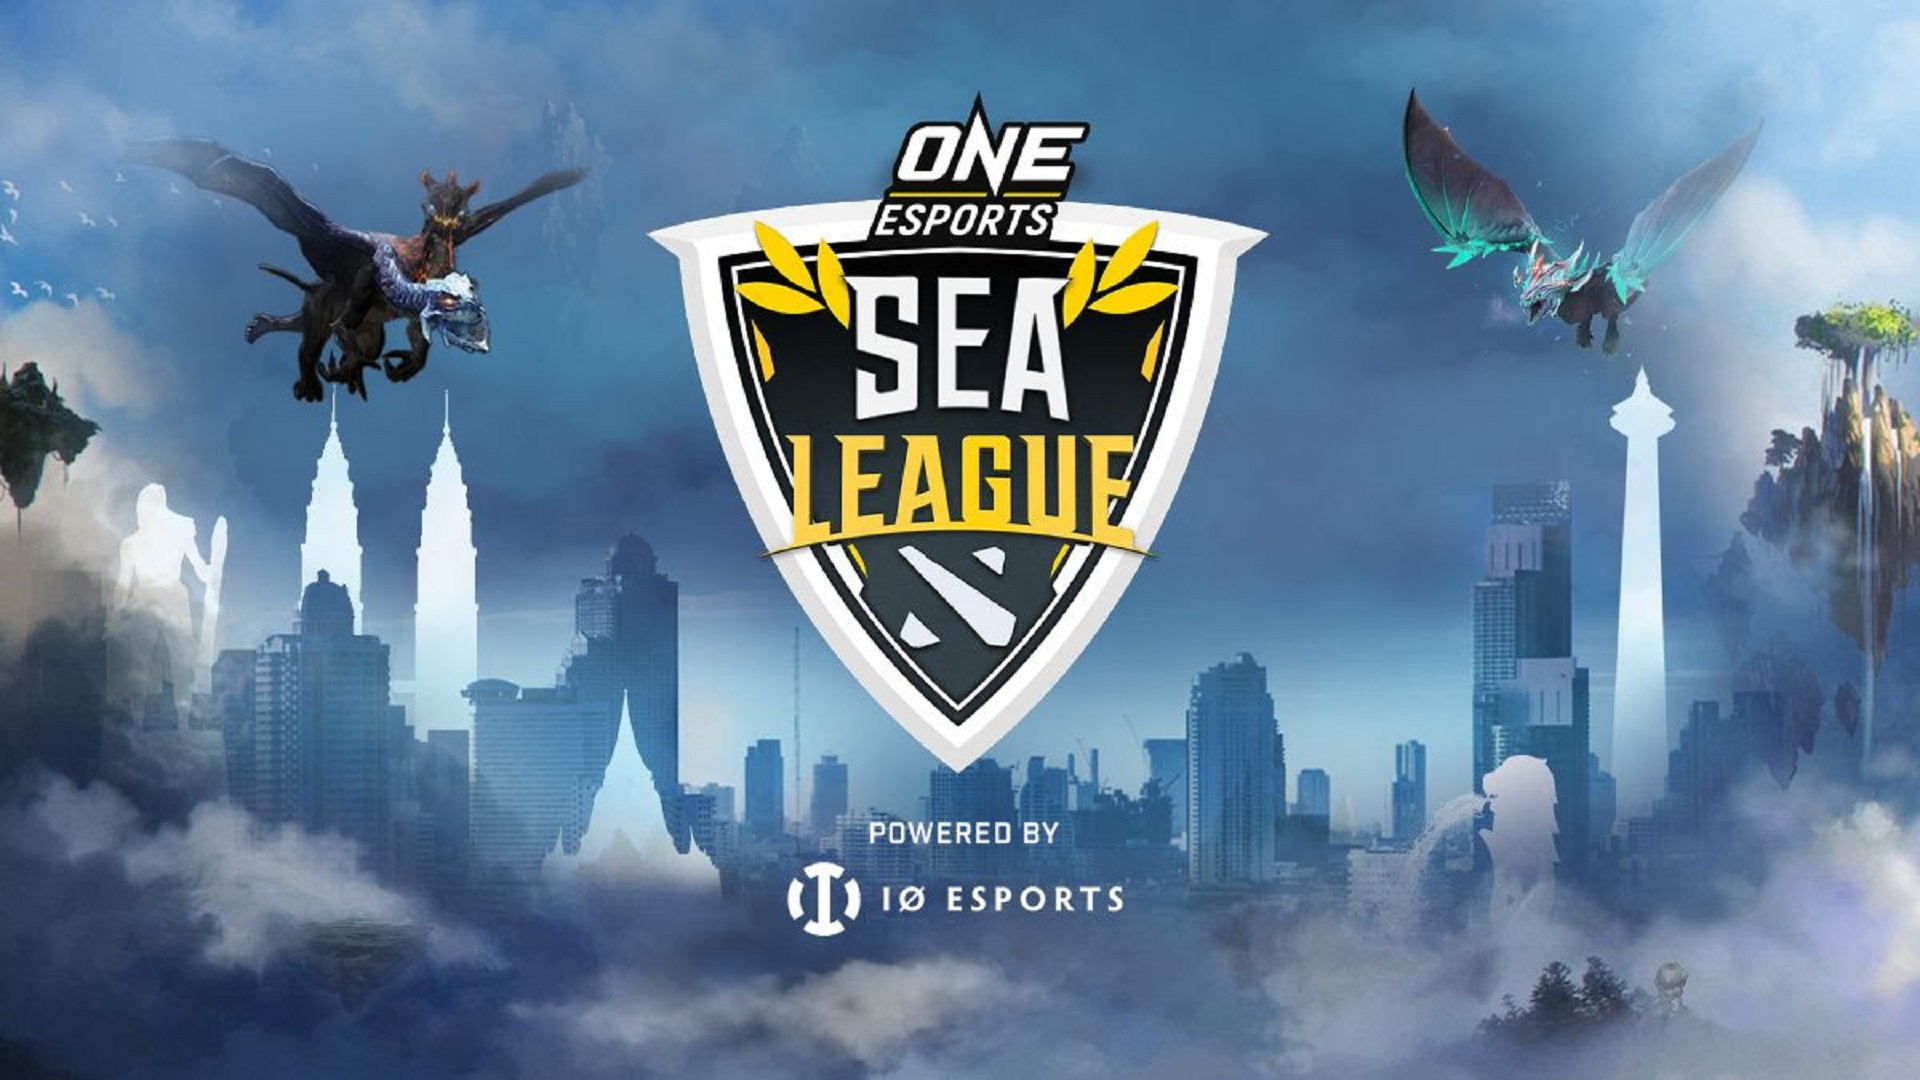 https://lockerroom.in/blog/view/ONE-ESports-DOTA-2-SEA-League